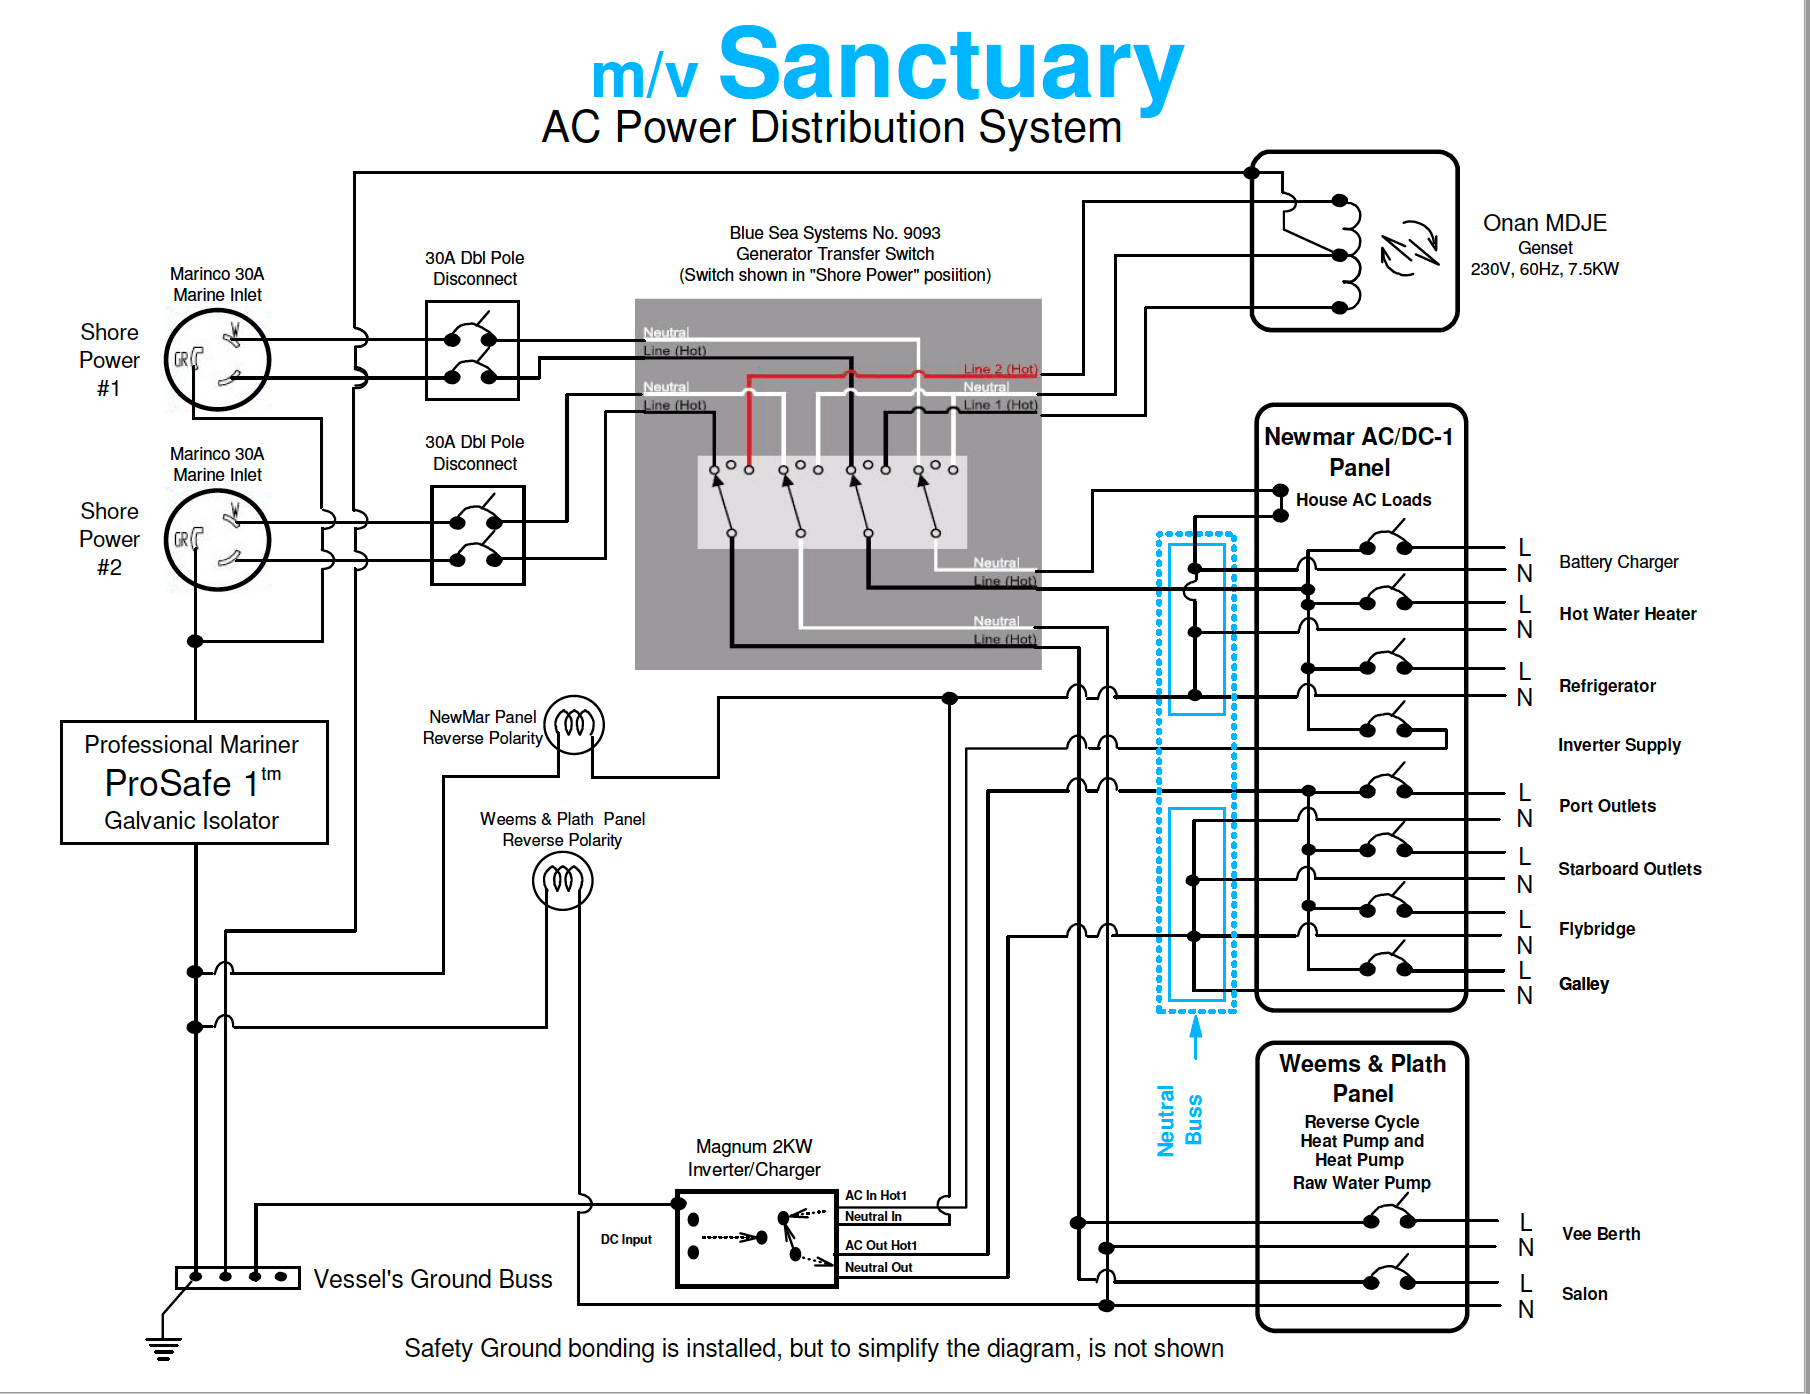 ABYC Electrical Standard Mapped to Sanctuary's AC System